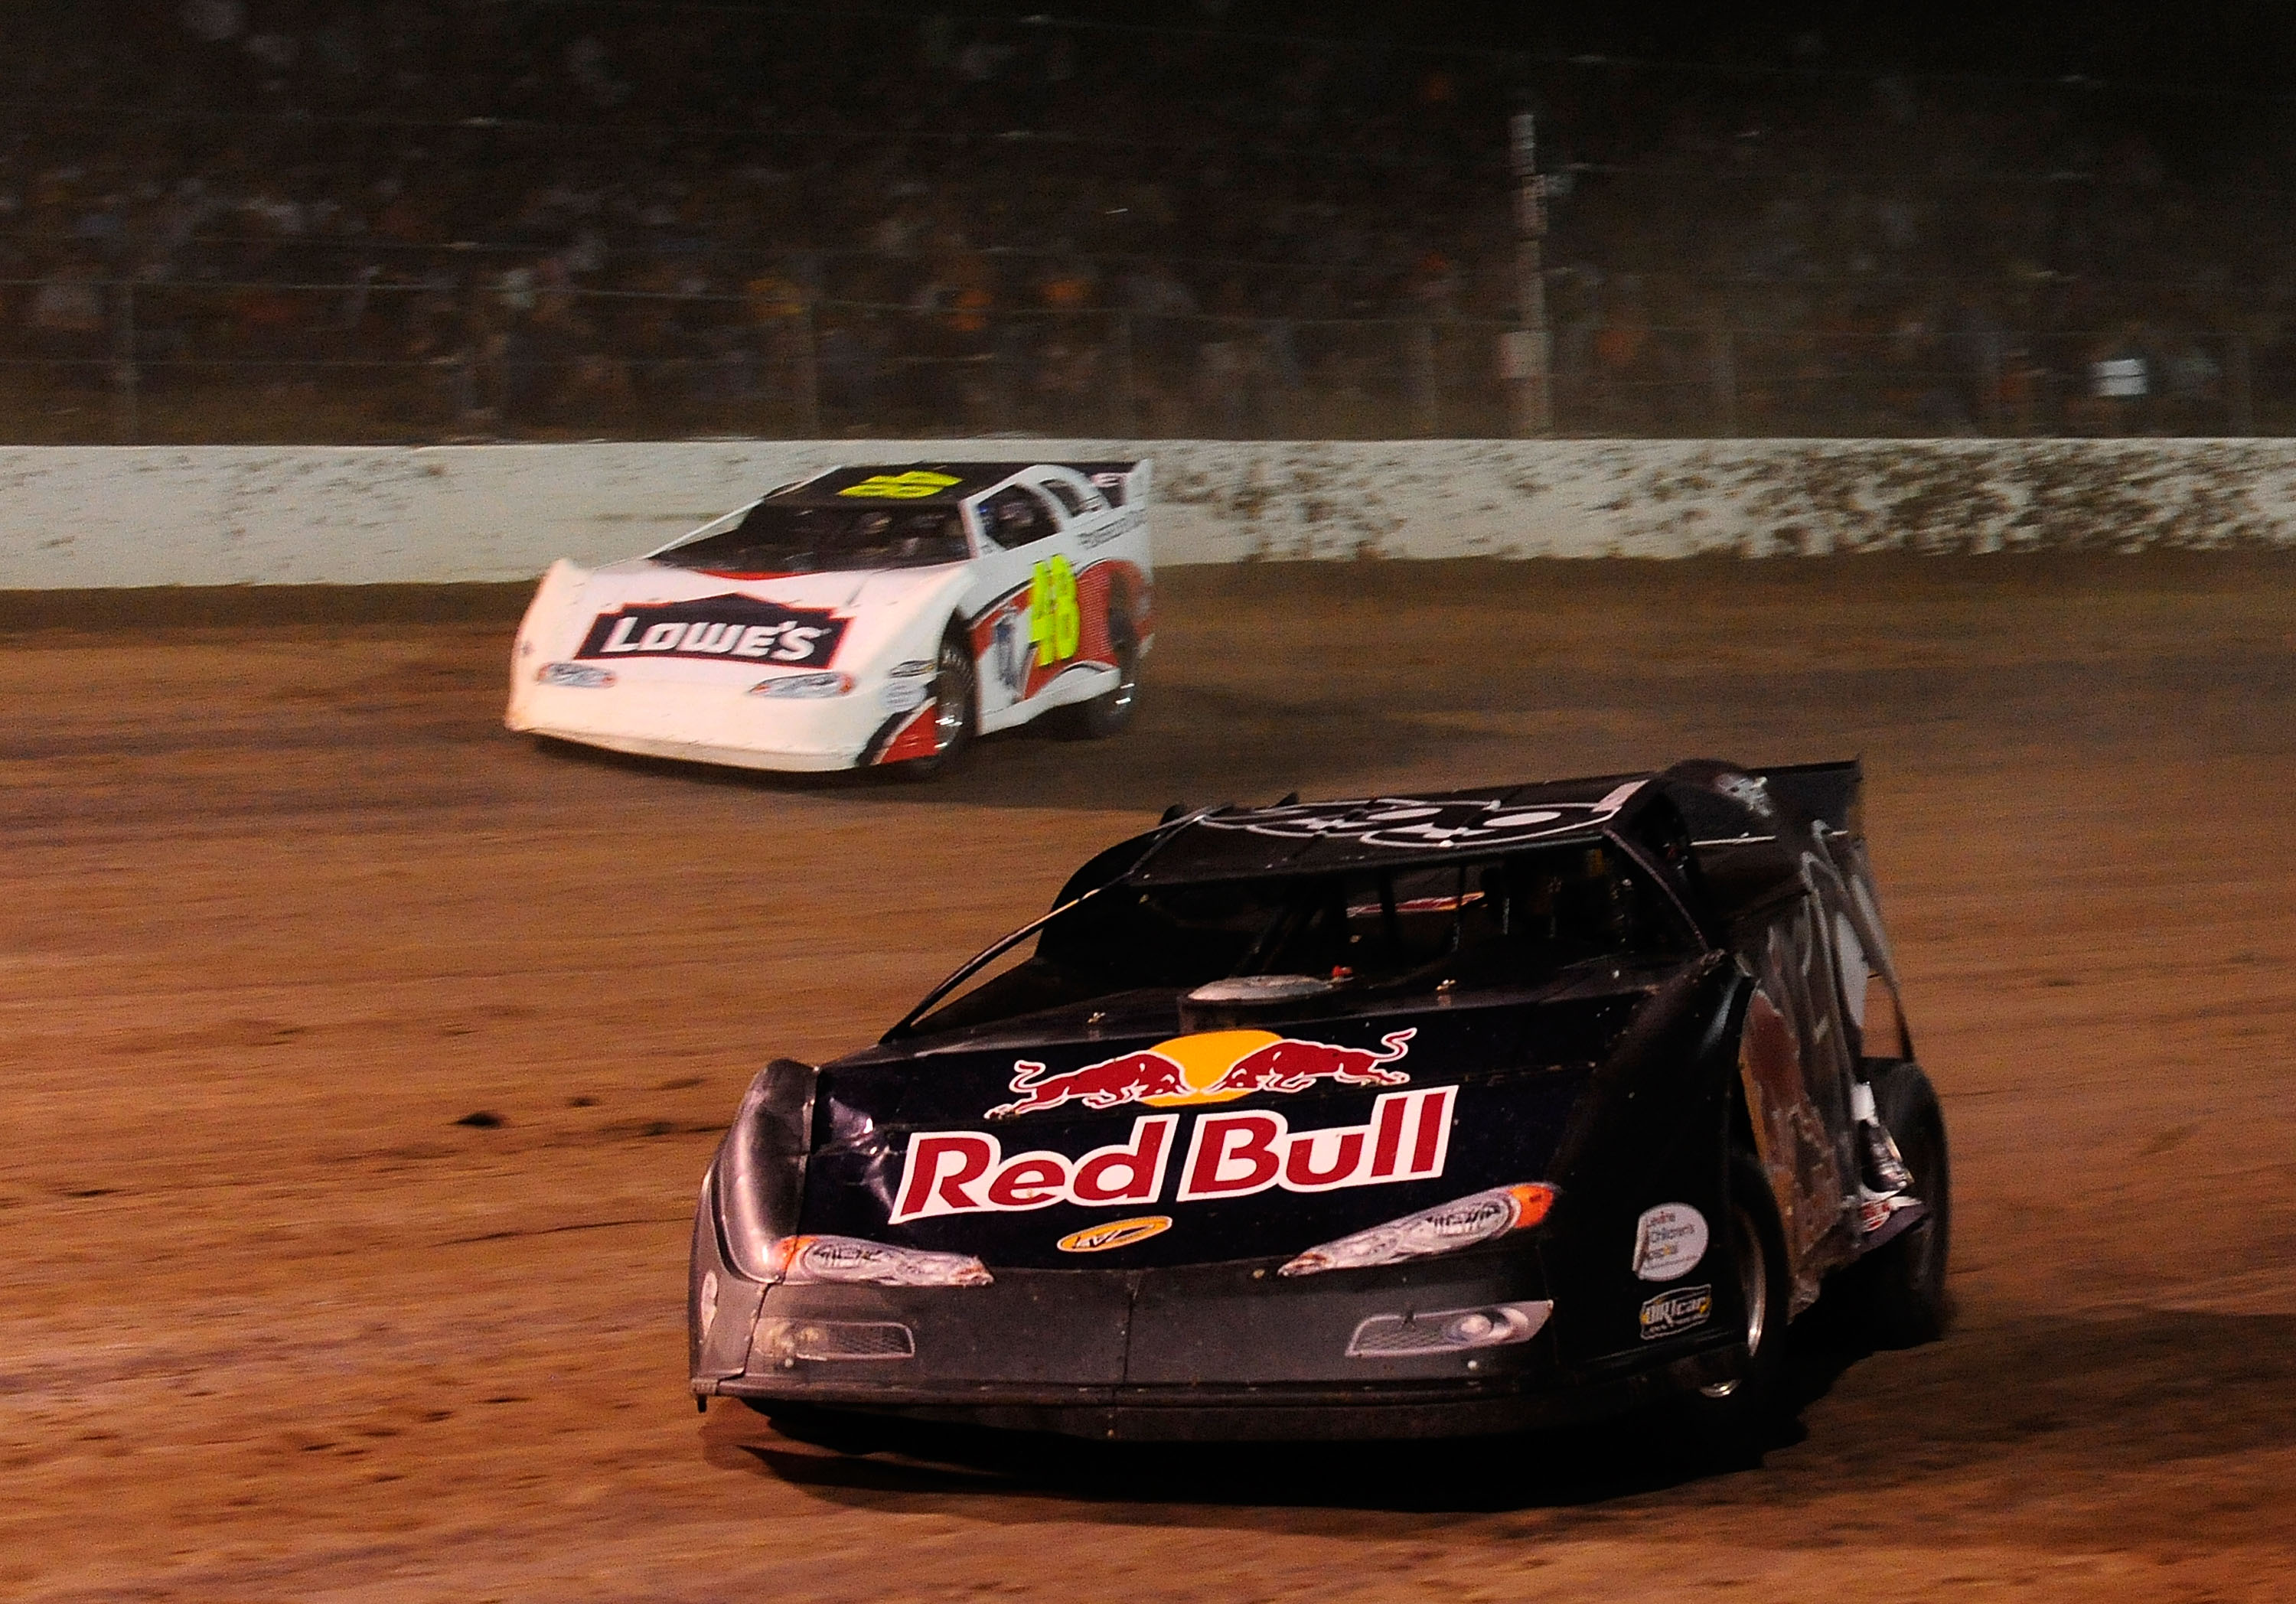 ROSSBURG, OH - JUNE 09:  Travis Pastrana, driver of the #199 Red Bull late model Subaru, leads Jimmie Johnson, driver of the #48 Lowes late model Chevrolet, through turn three during the Gillette Fusion ProGlide Prelude to the Dream at Eldora Speedway on